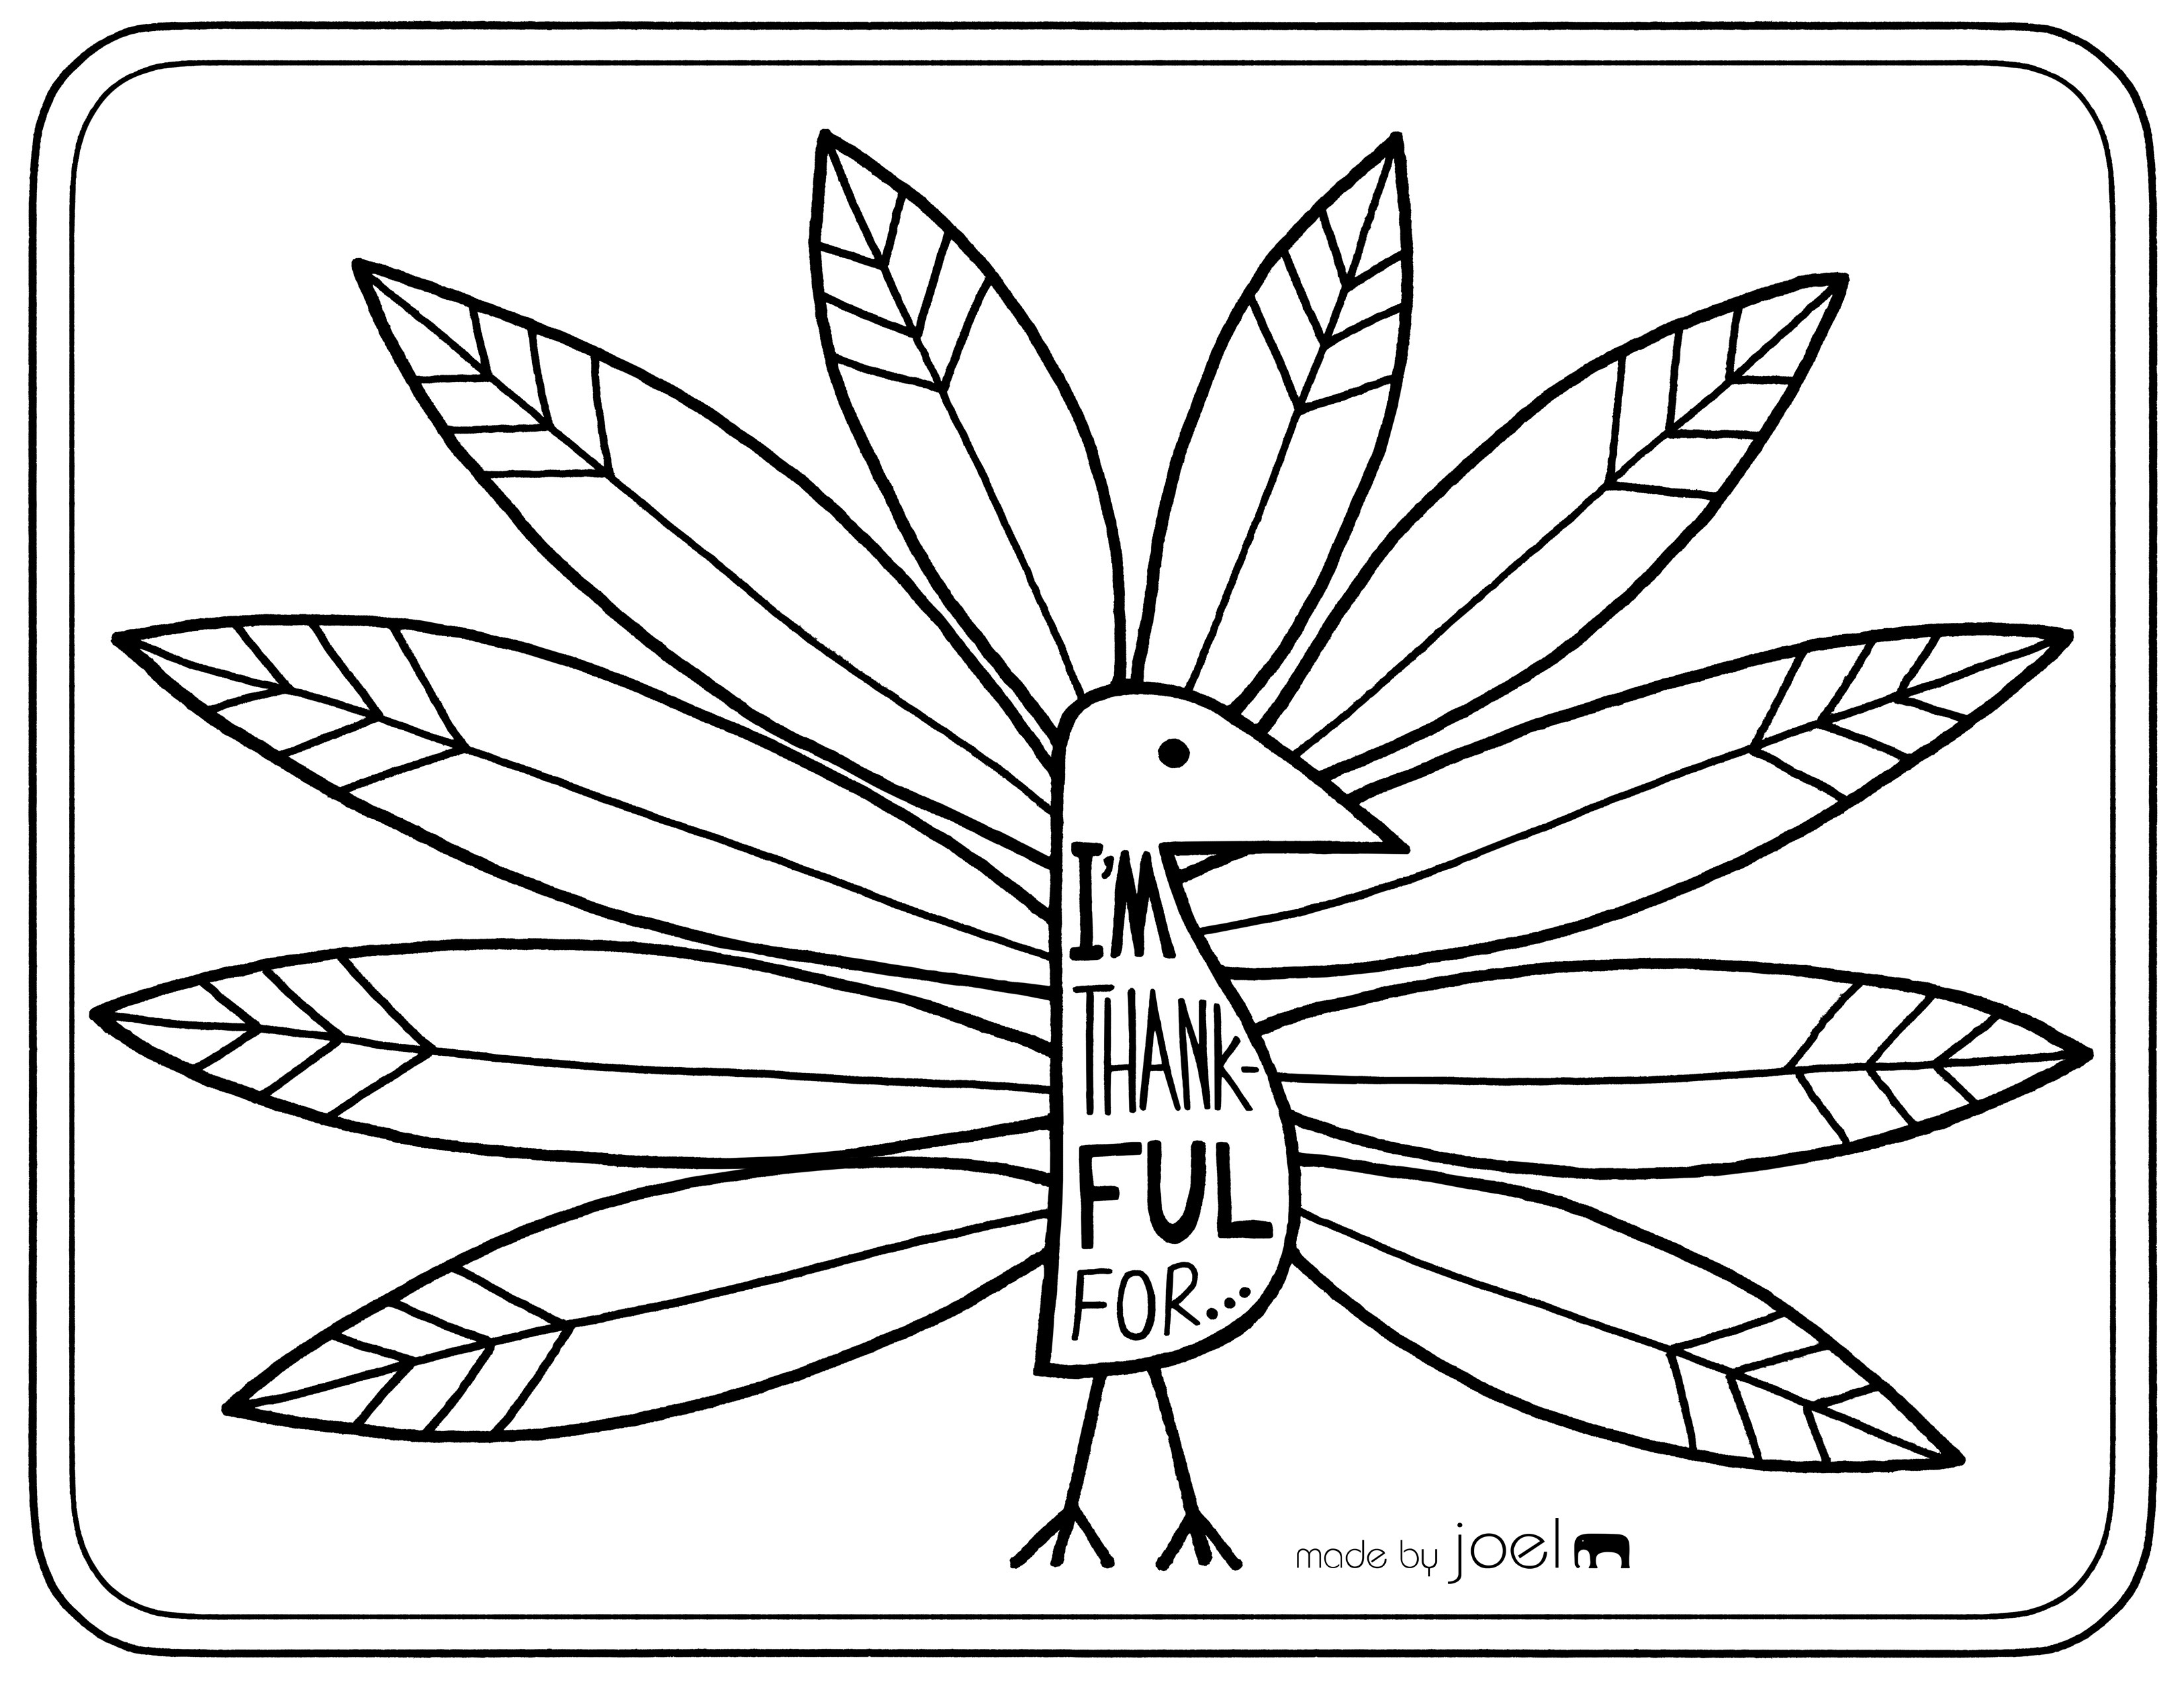 Printable Placemat For Giving Thanks Made By Joel